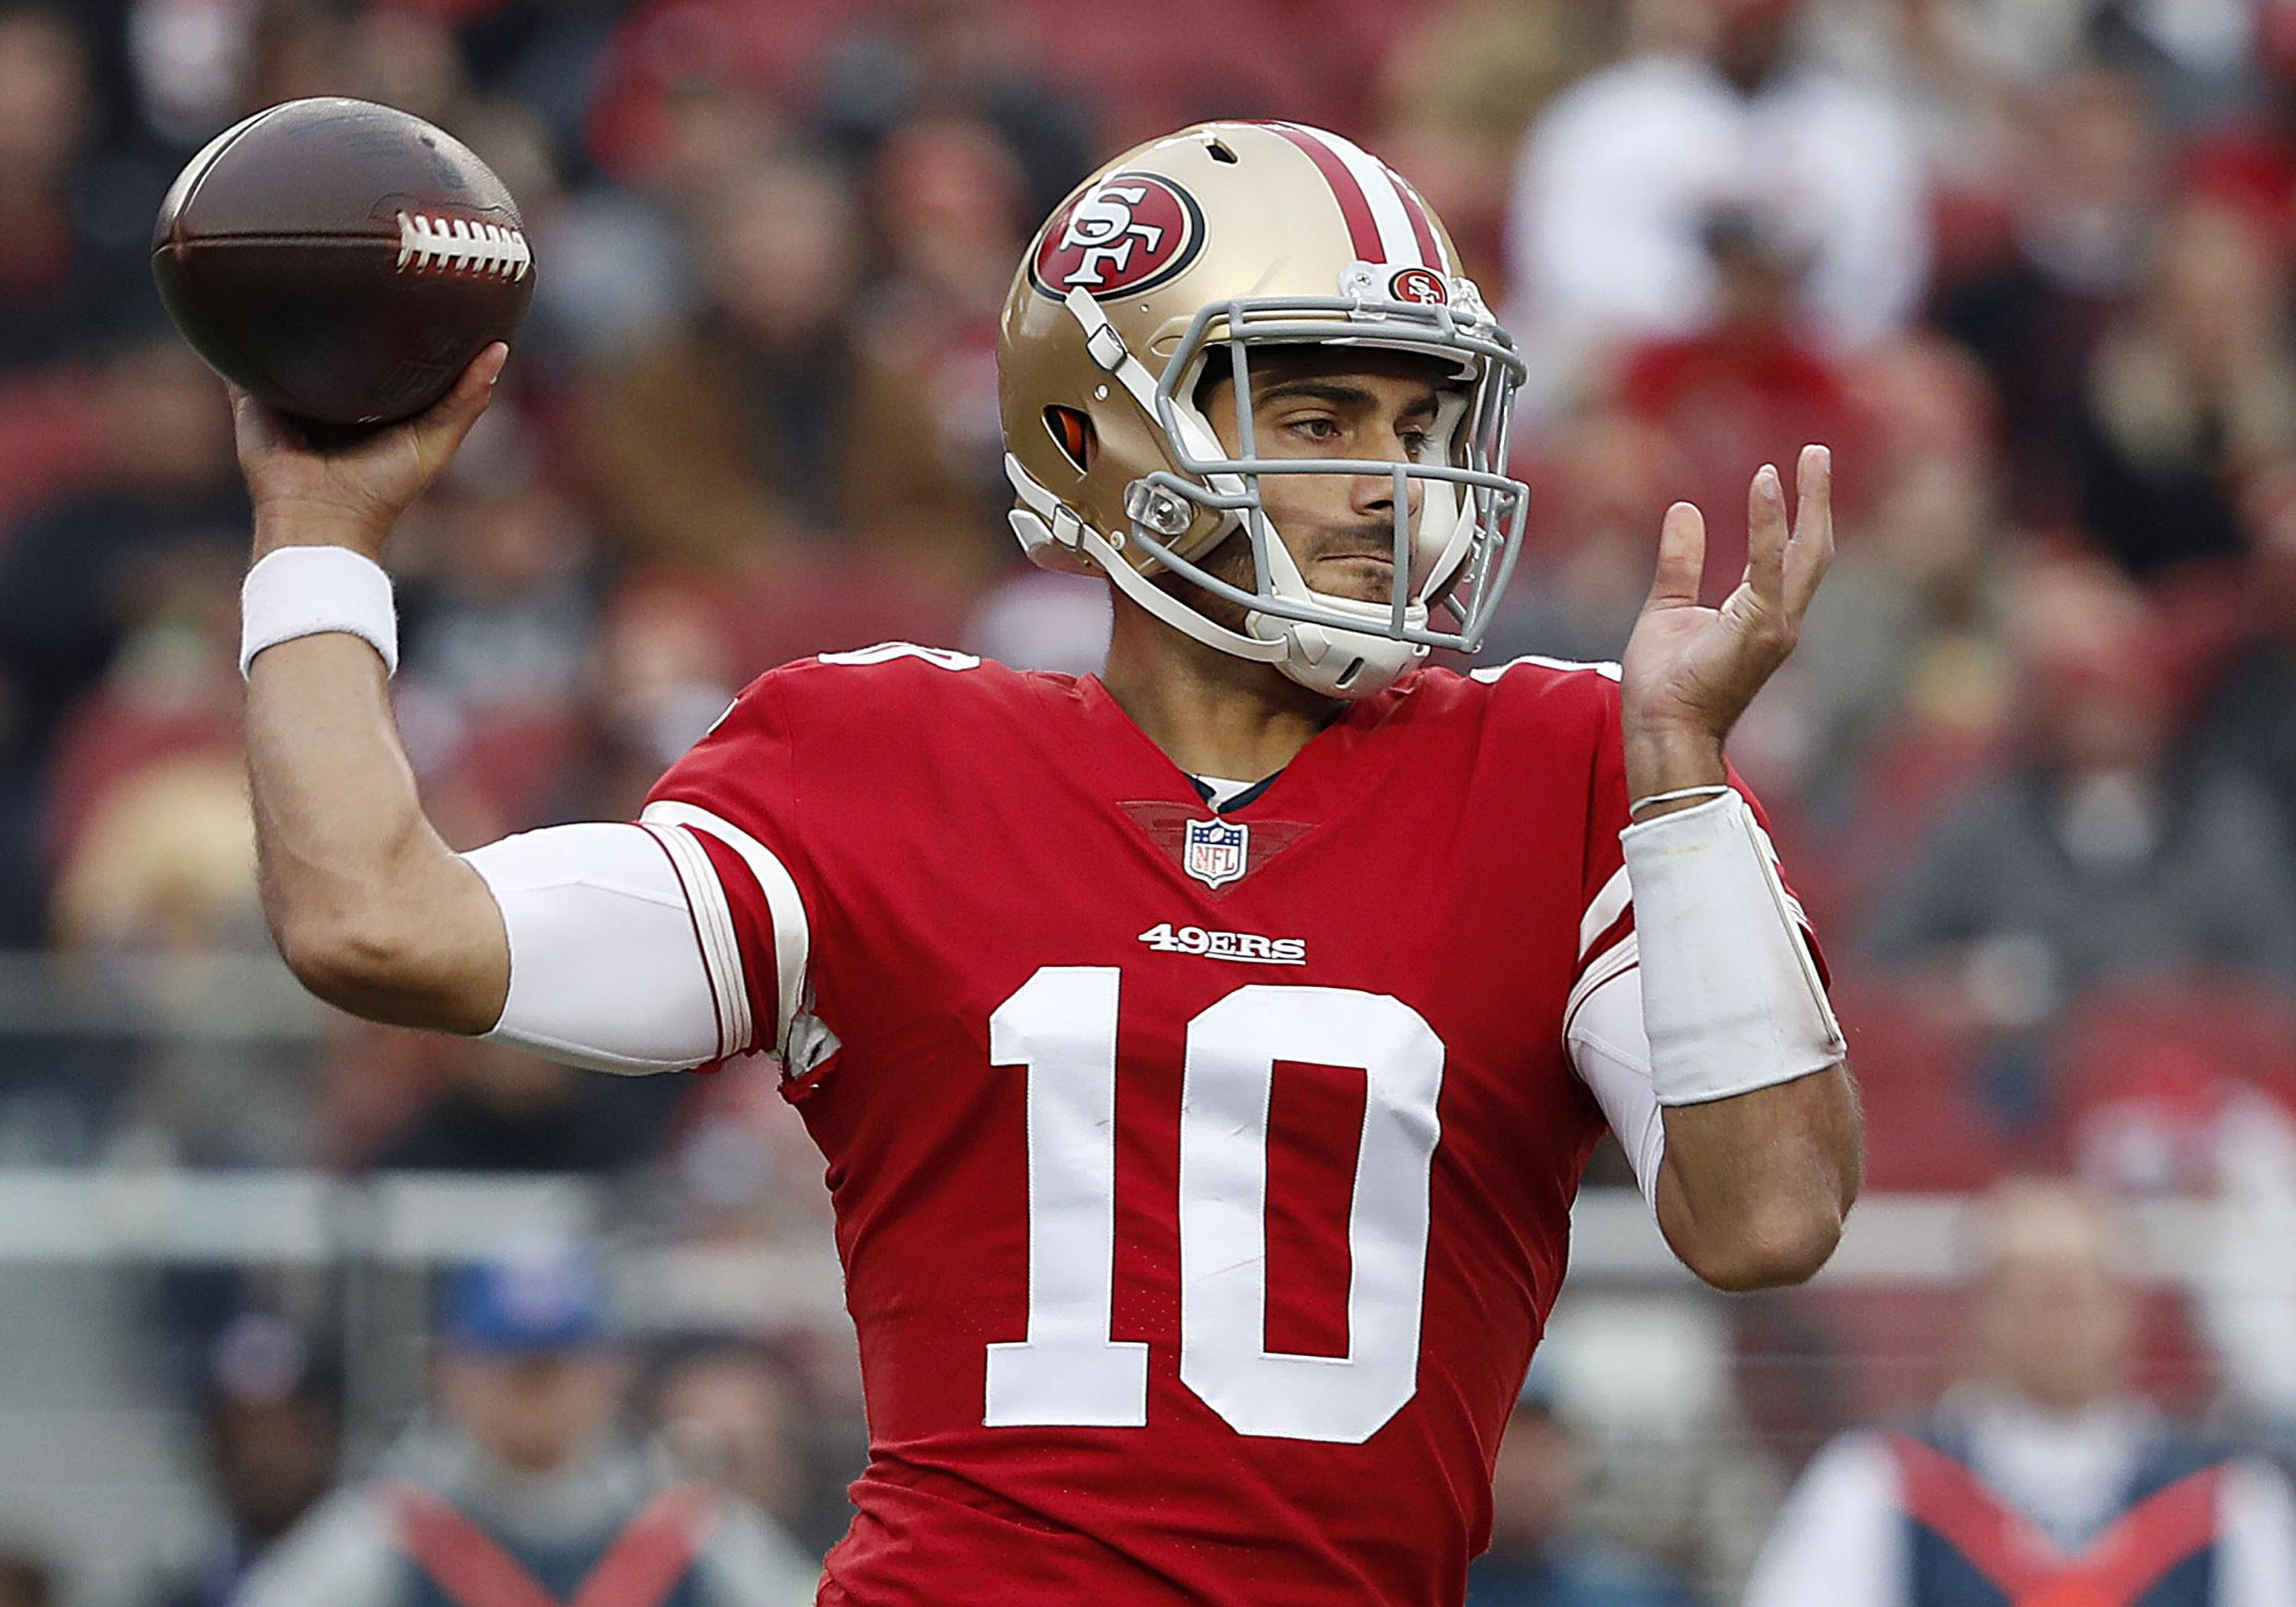 official photos e44ca ceae1 San Francisco 49ers sign QB Jimmy Garoppolo to 5-year deal ...